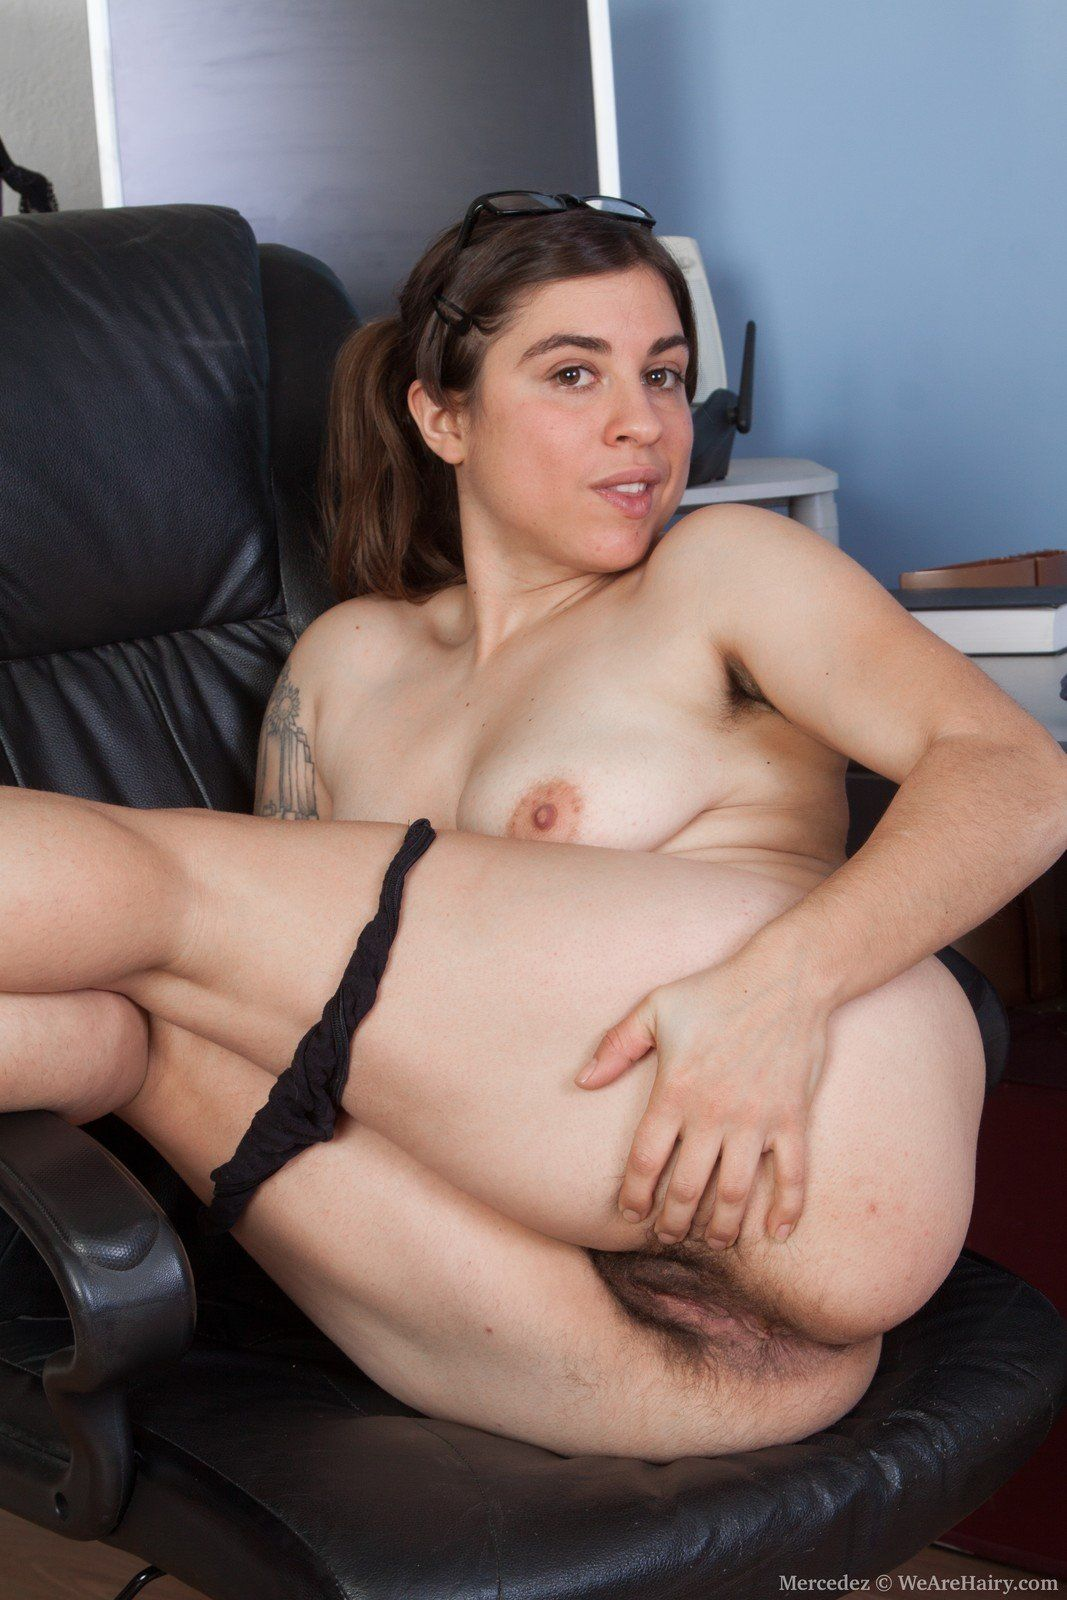 Naked hairy women in the office. Cumming in asshole. CM3D2 DEMO. Hentai  porno tube